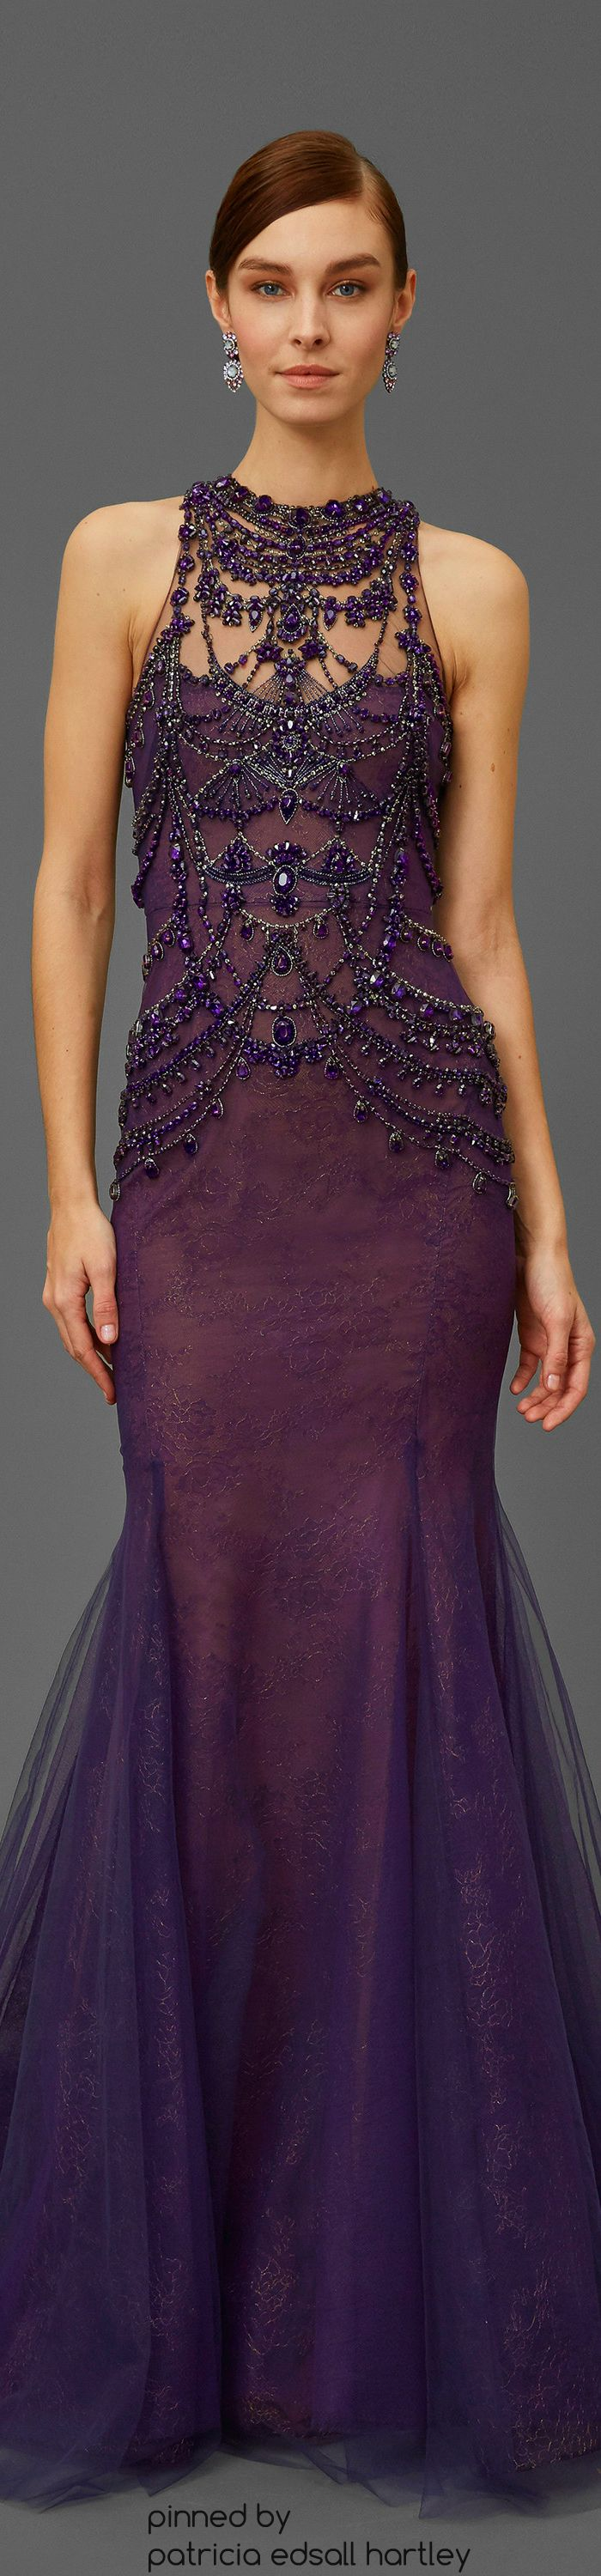 Marchesa Pre-Fall 2016 women fashion outfit clothing style apparel @roressclothes closet ideas